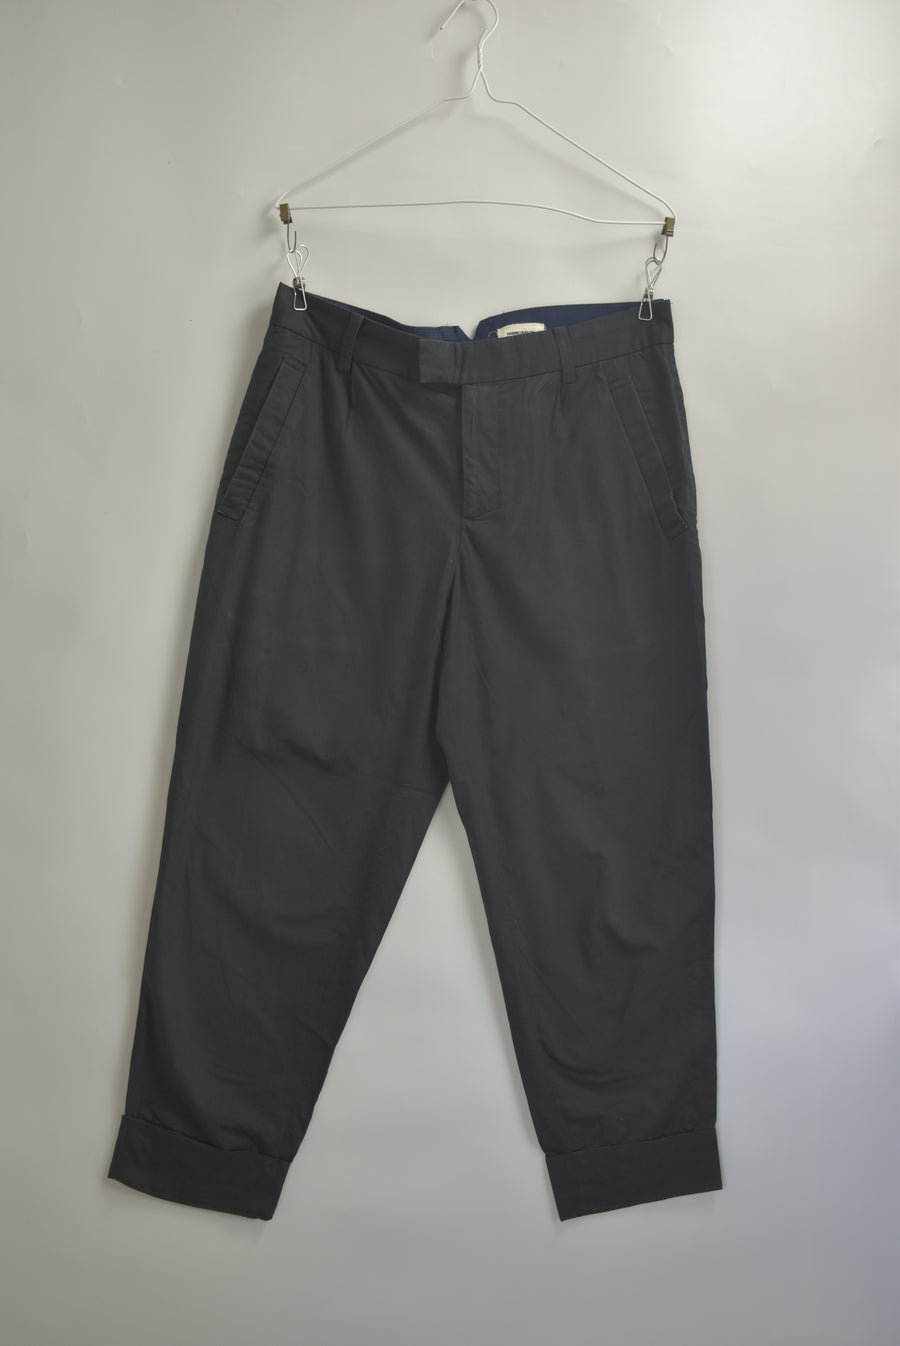 UNDERCOVER / Cropped Slacks Pants / 8179 - 0703 69.5